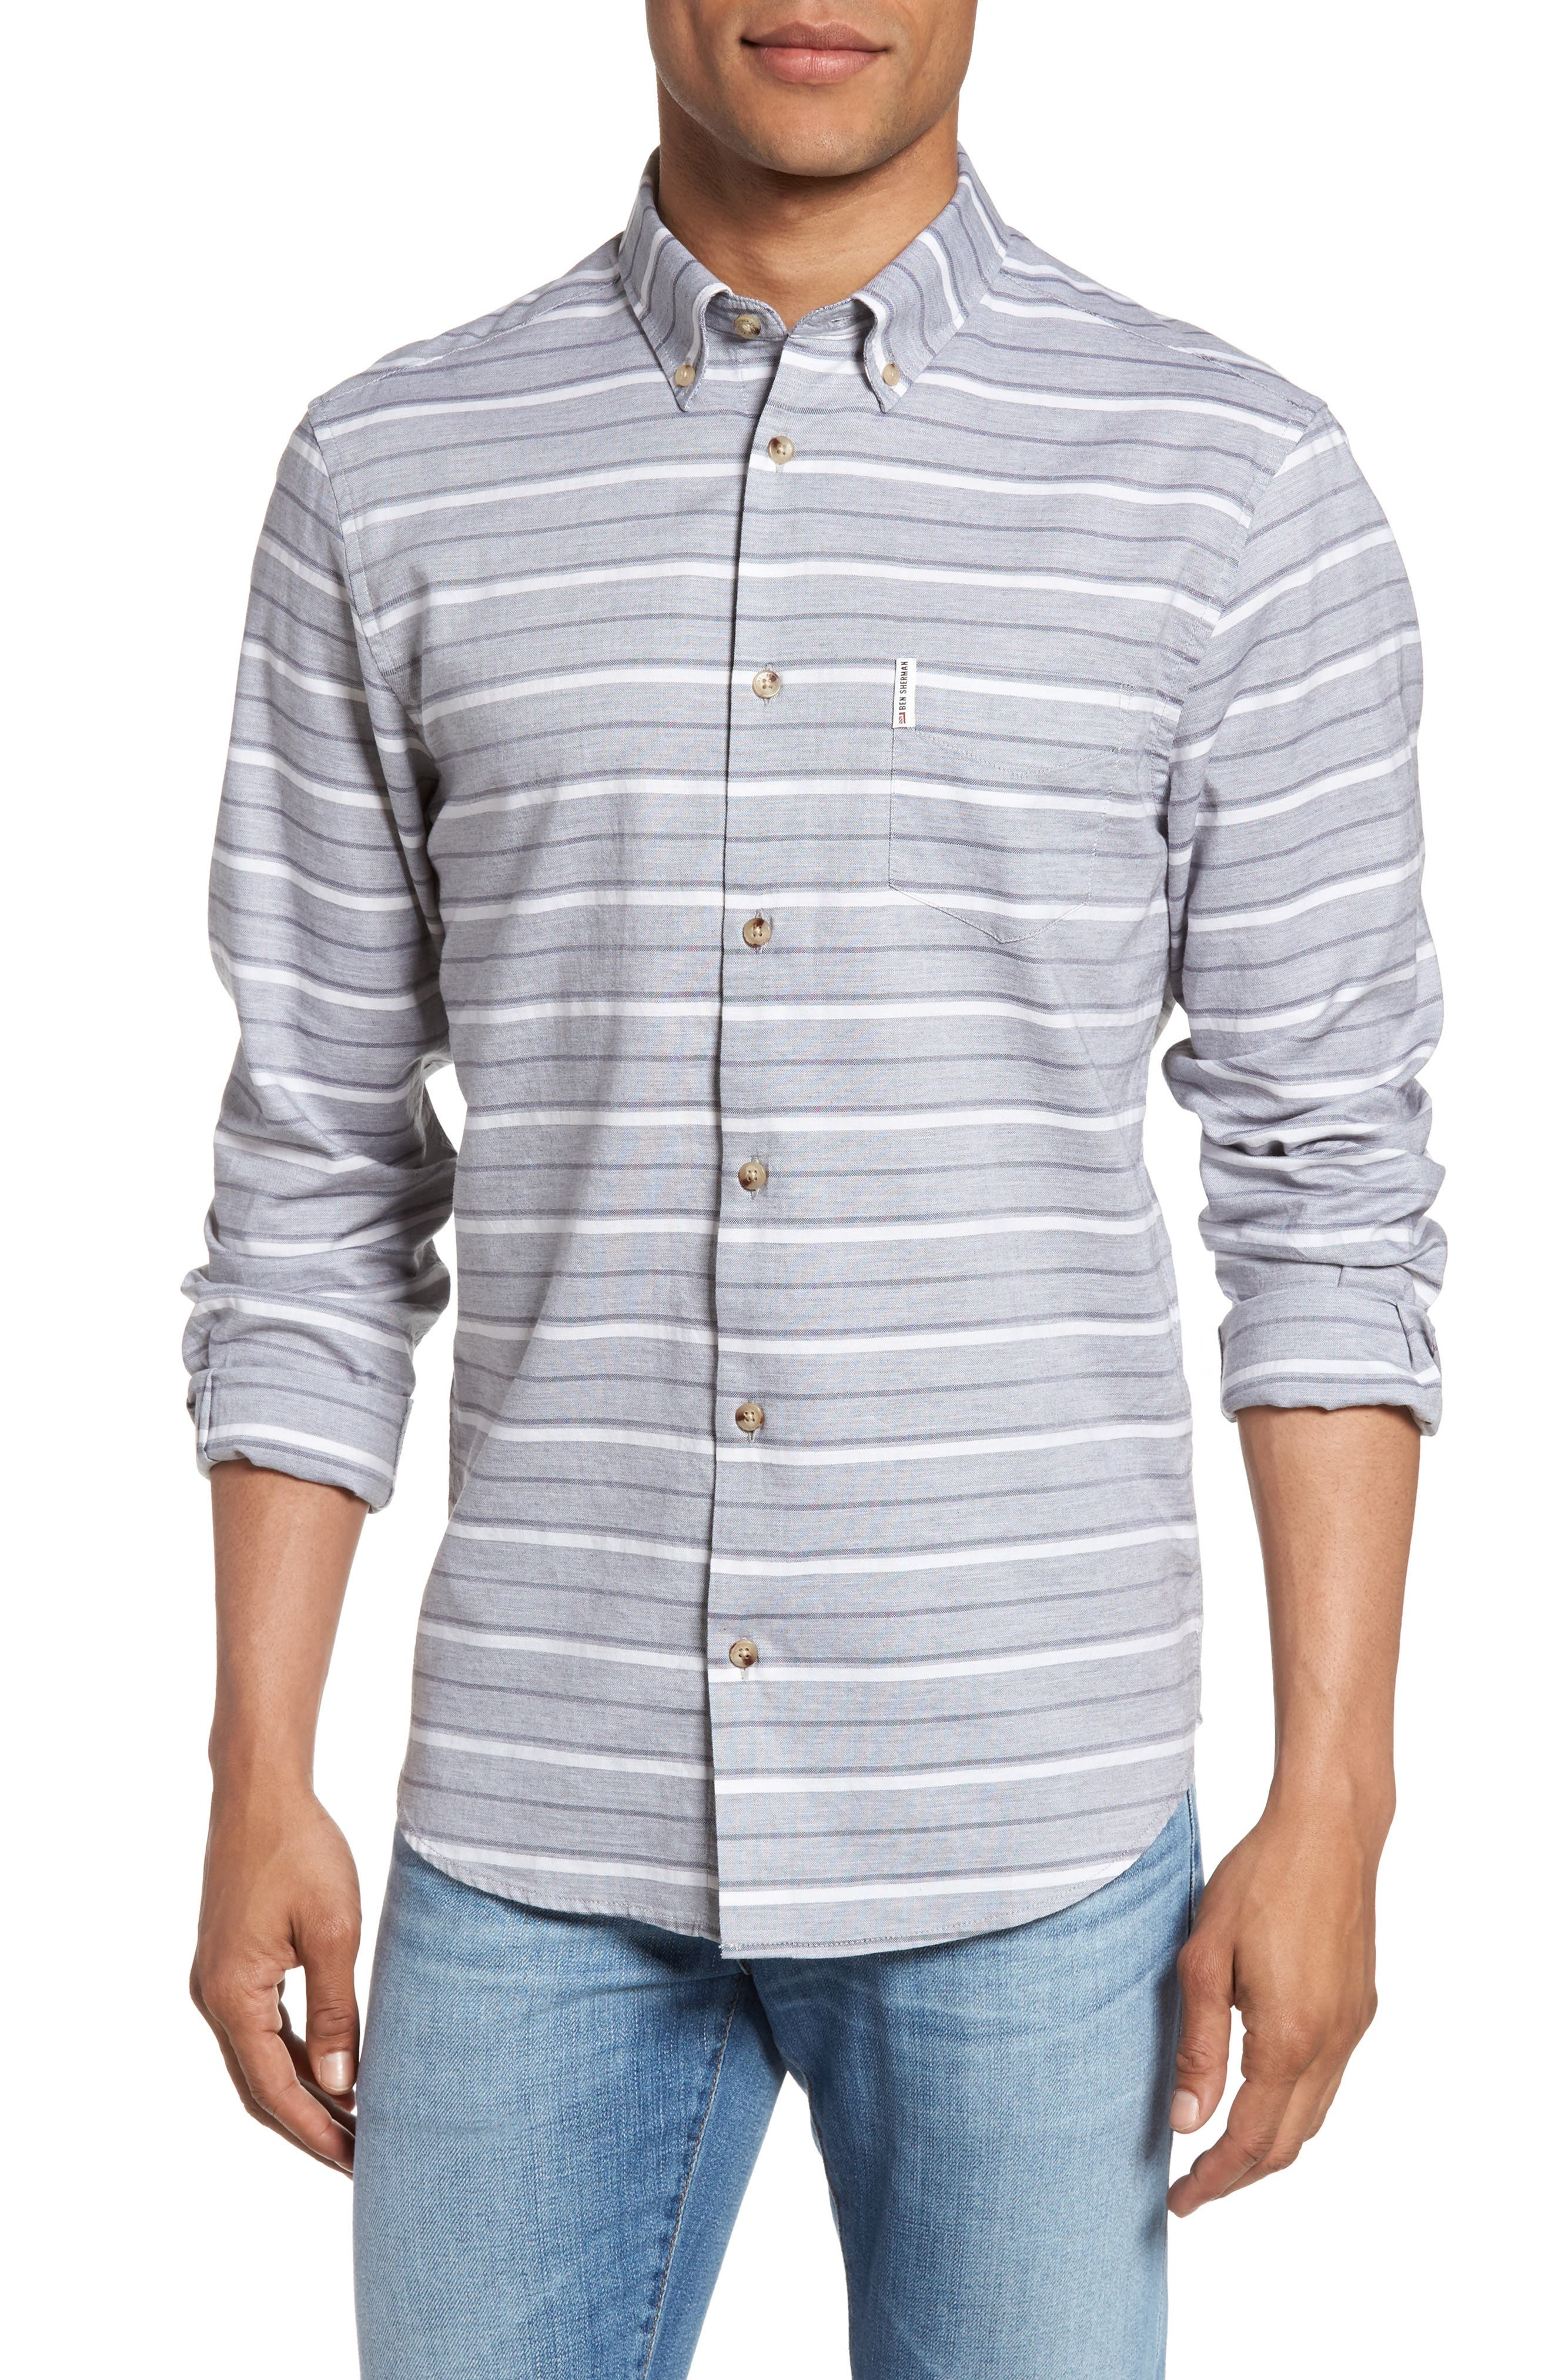 Ben Sherman Tipping Horizontal Stripe Shirt